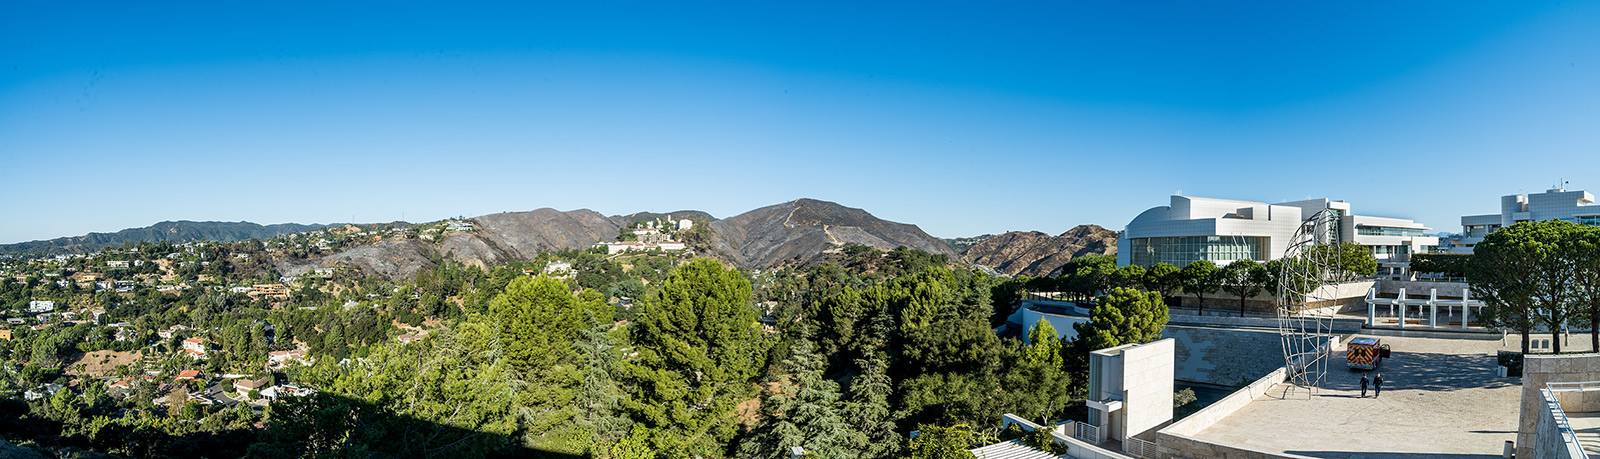 Panoramic image to the north of the Getty Center, showing distant charred hillsides as the result of the Getty Fire